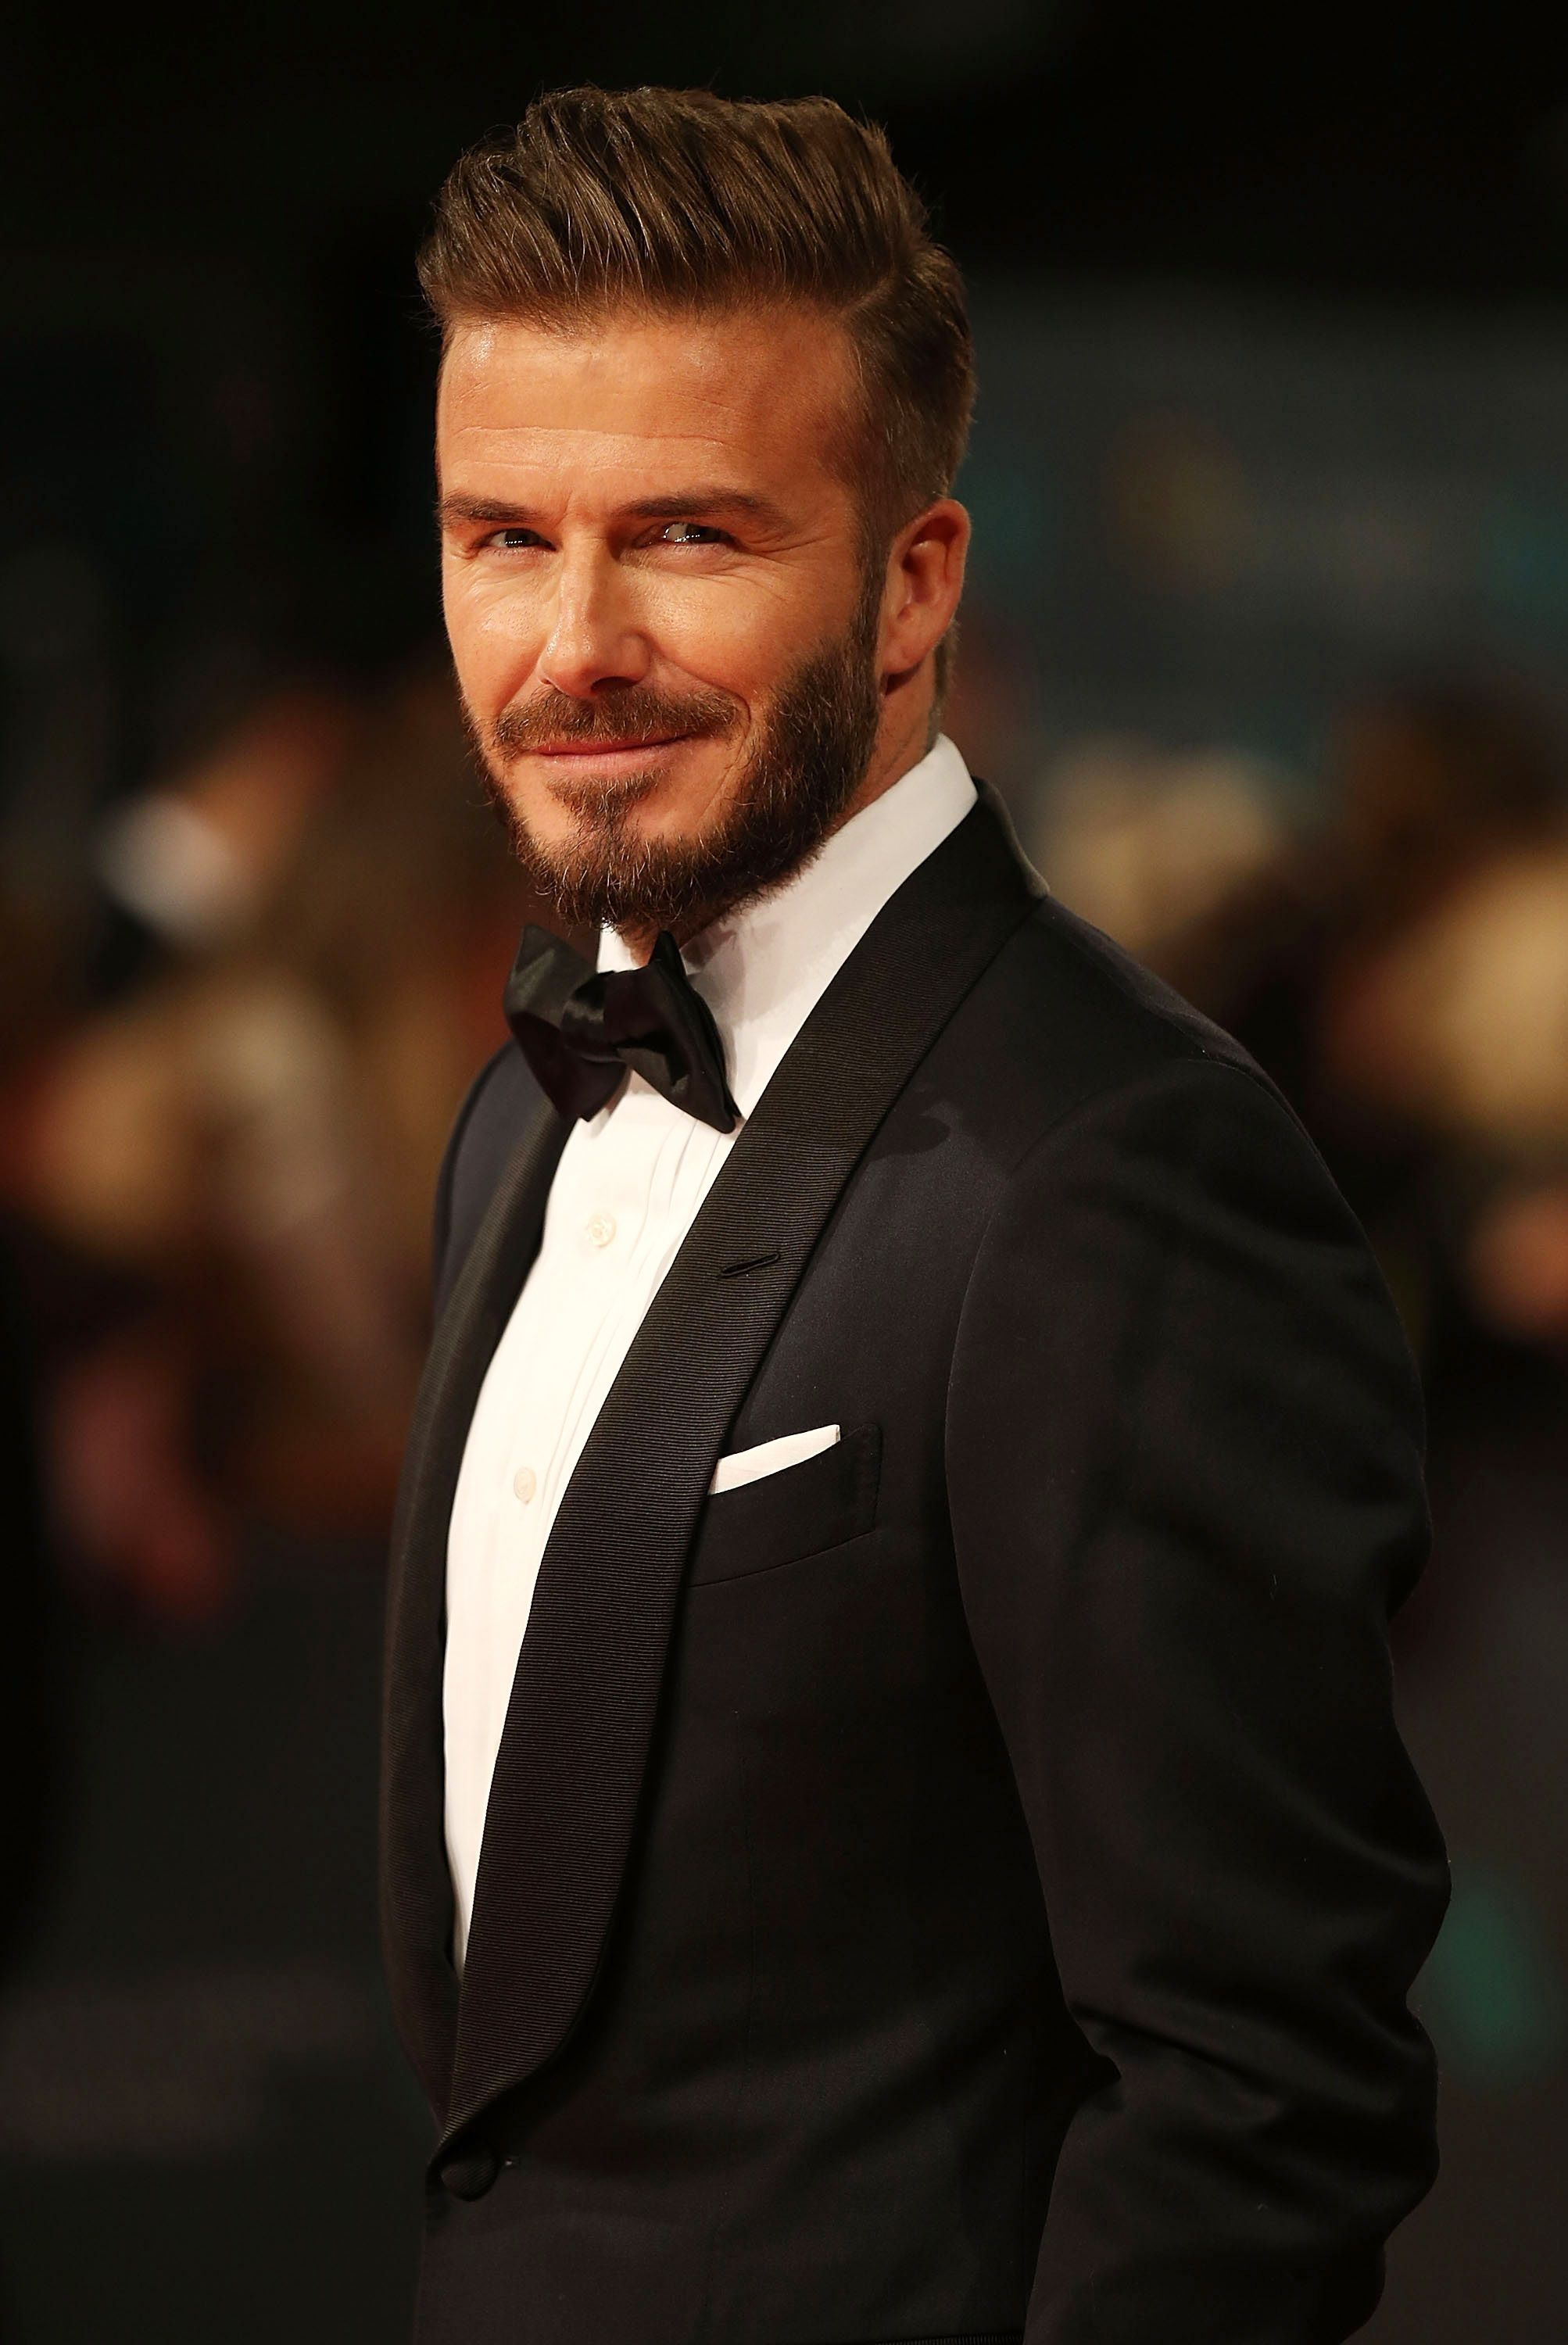 David Beckham Just Had The Biggest Fan Girl Moment Meeting Game Of